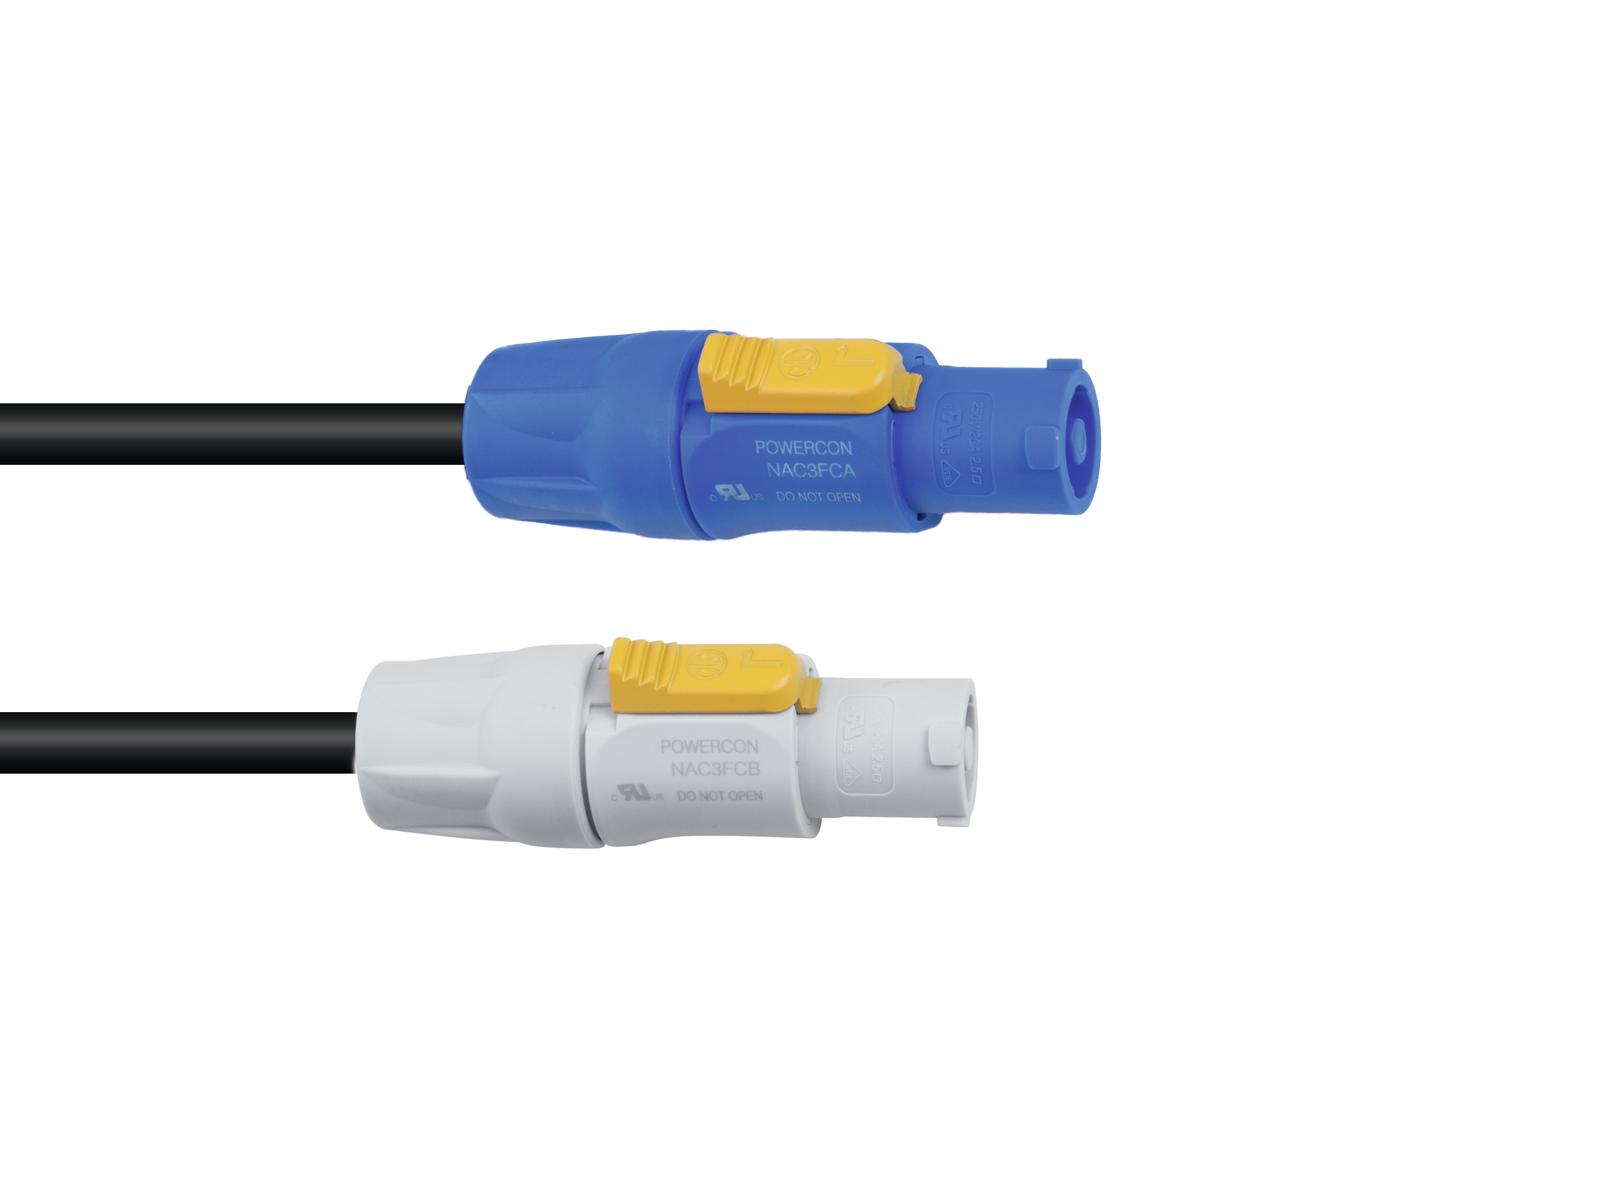 Power cable PSSO PowerCon 3x2.5 1 M